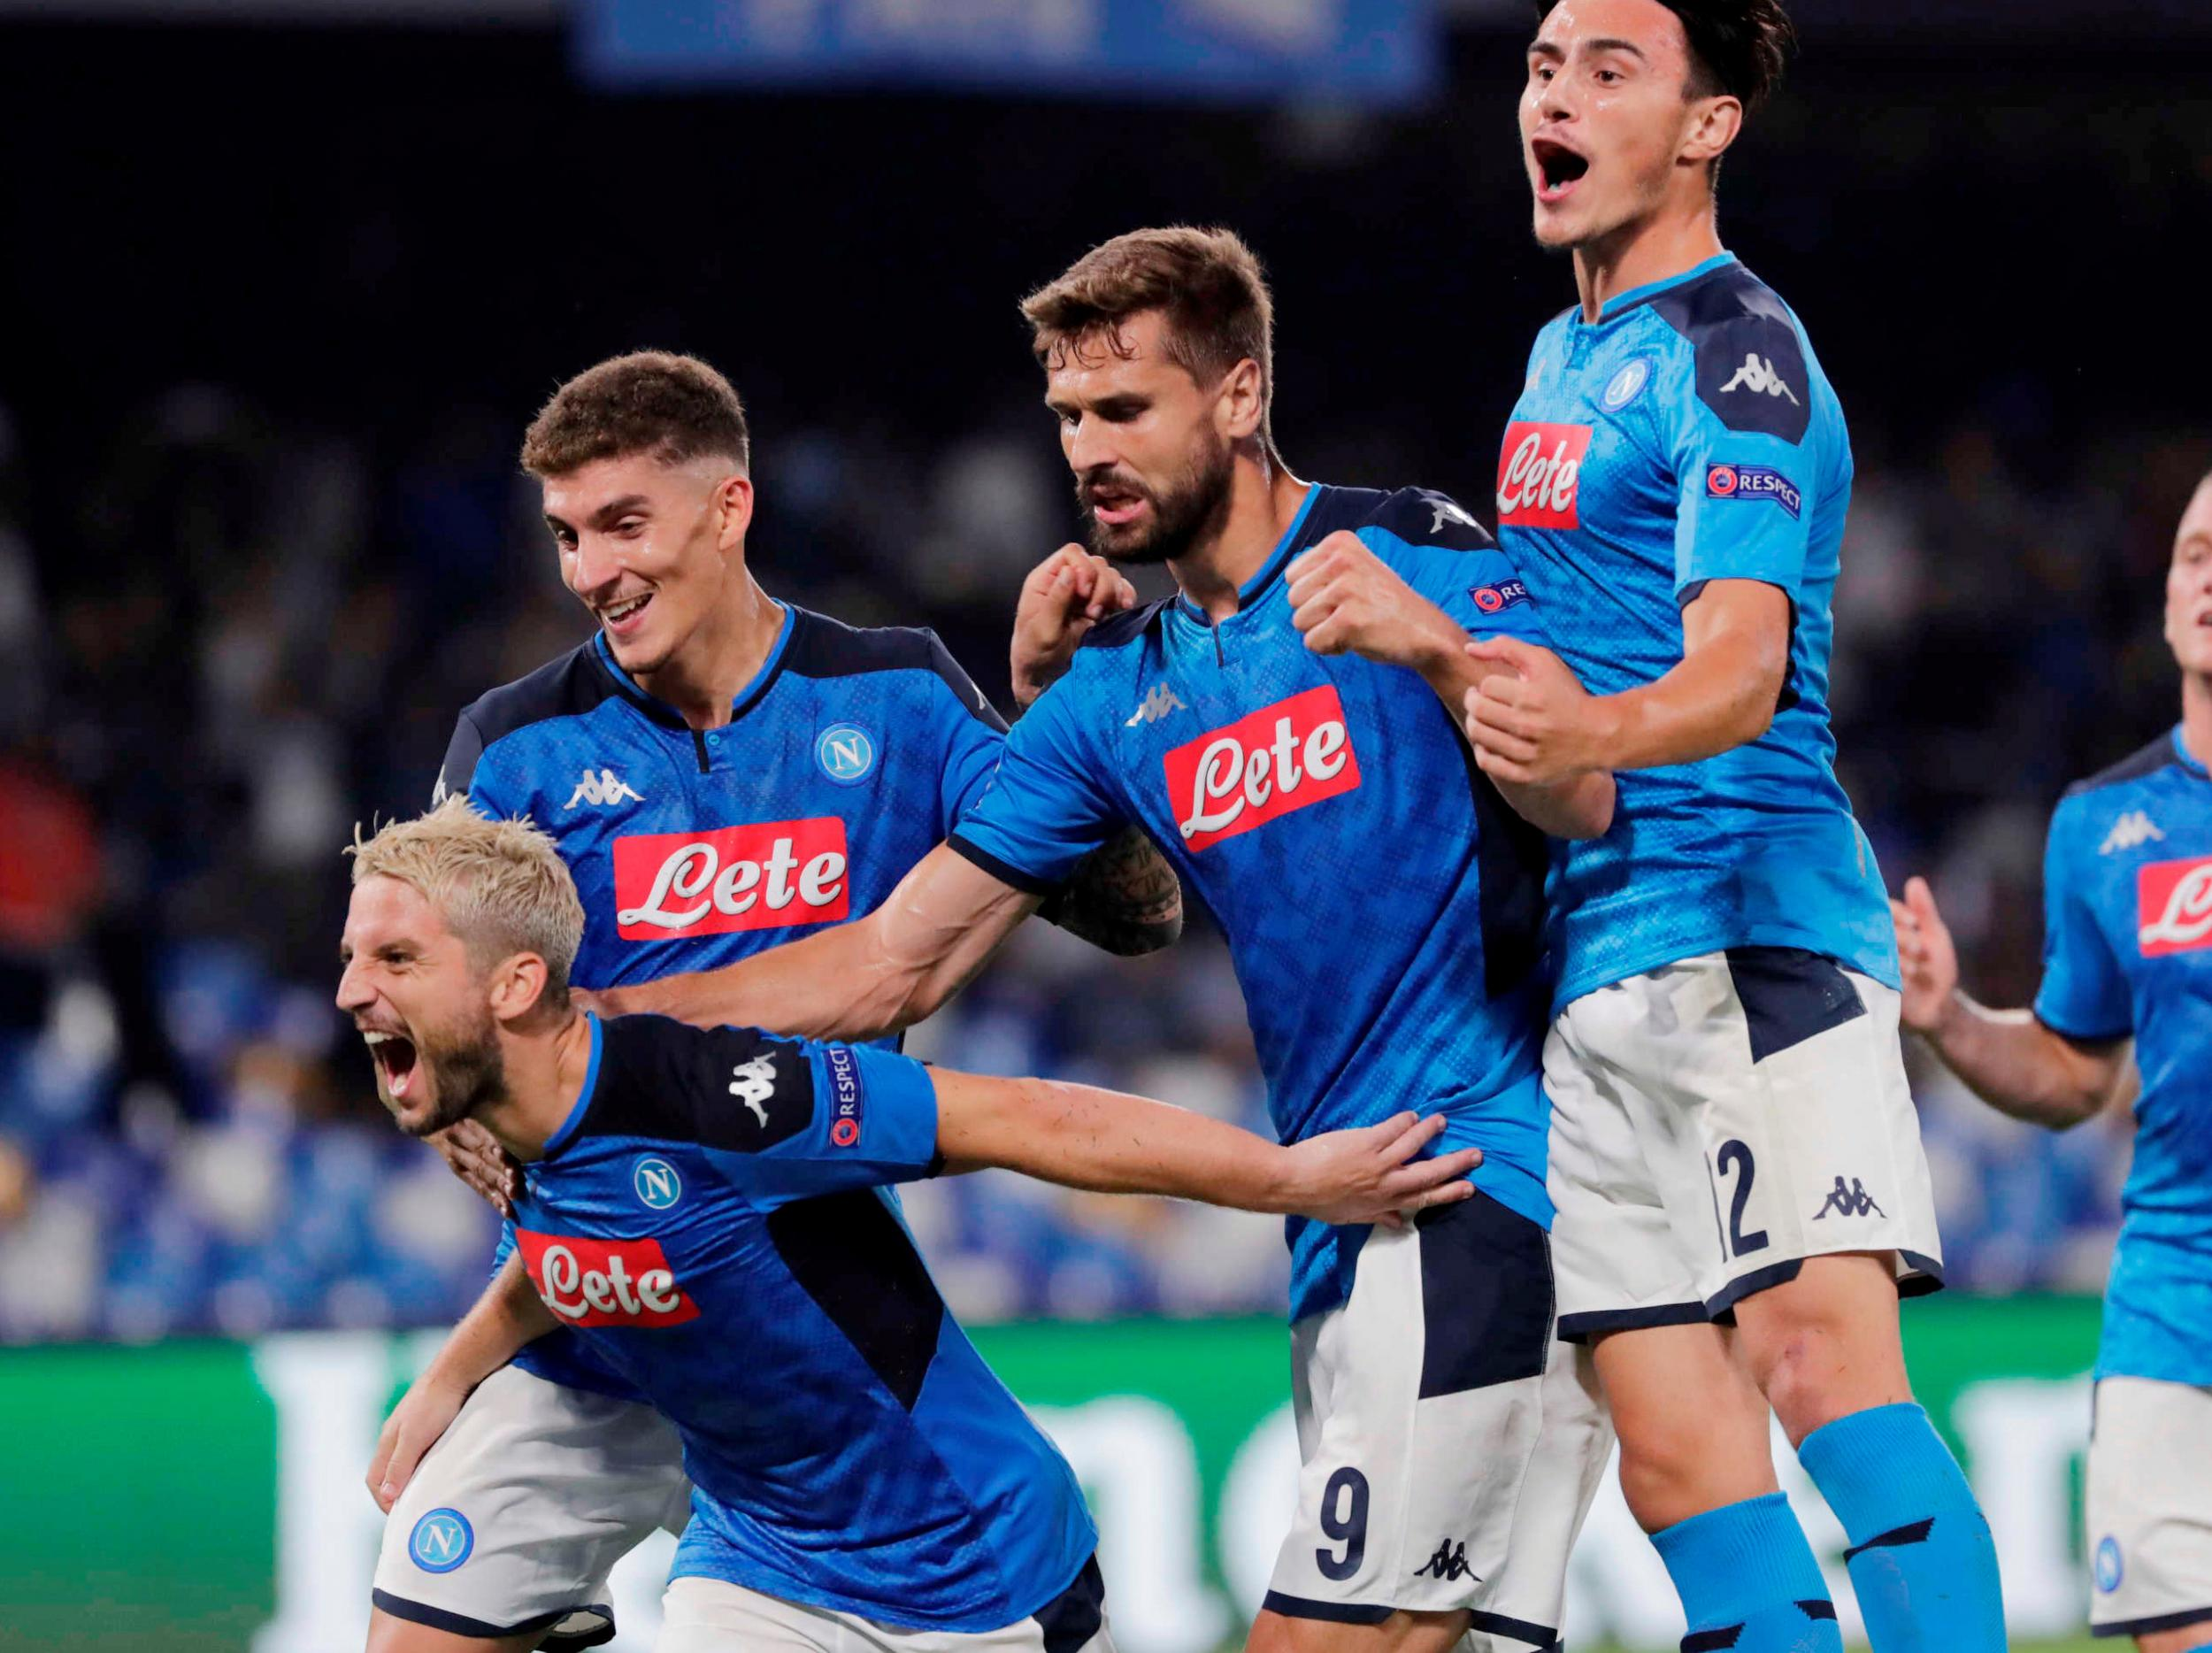 Liverpool stunned by Napoli as their Champions League title defence begins with defeat